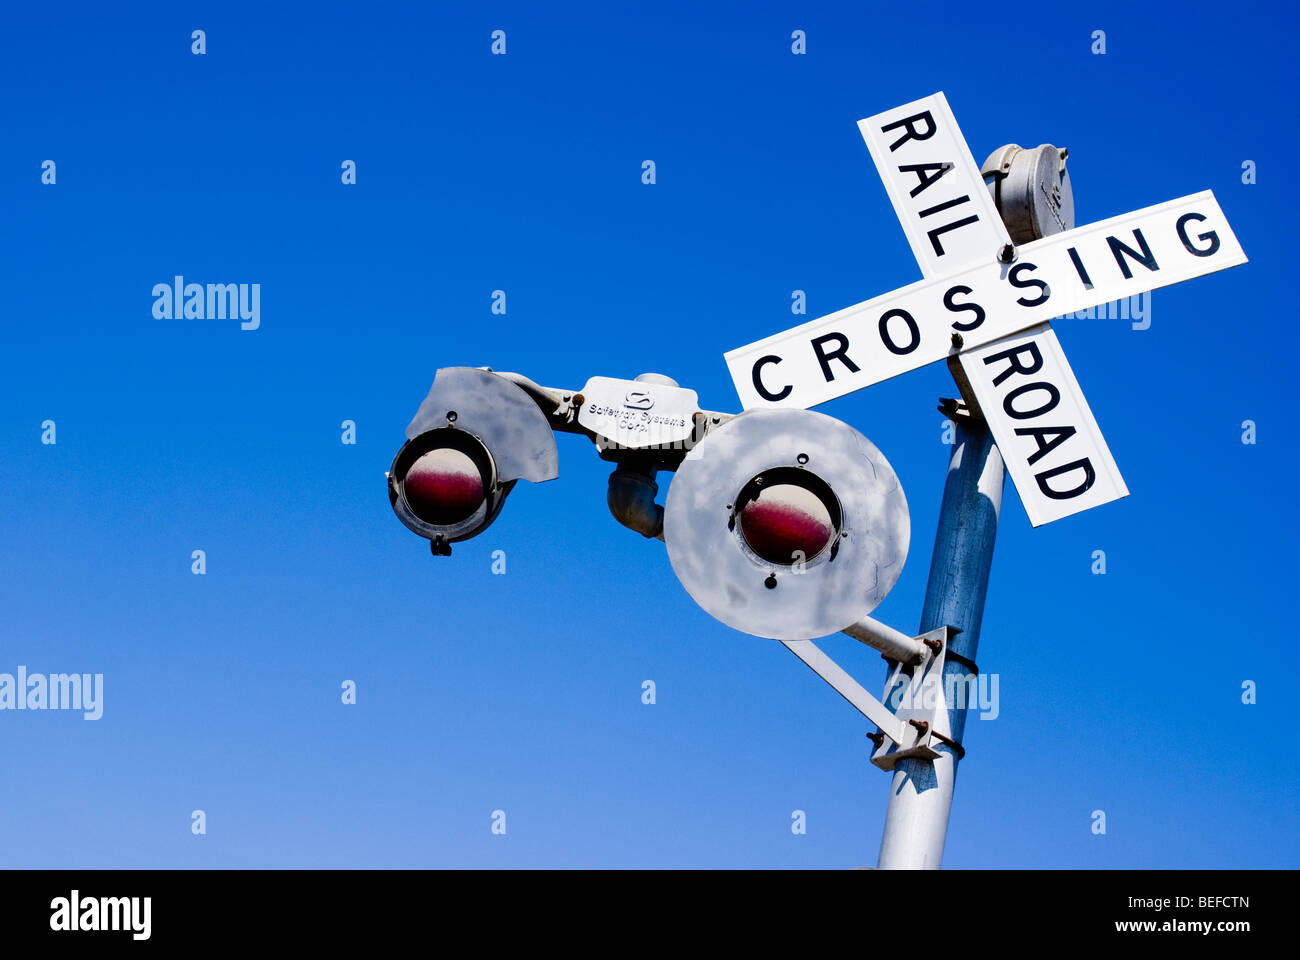 A railroad crossing sign against a blue sky. - Stock Image